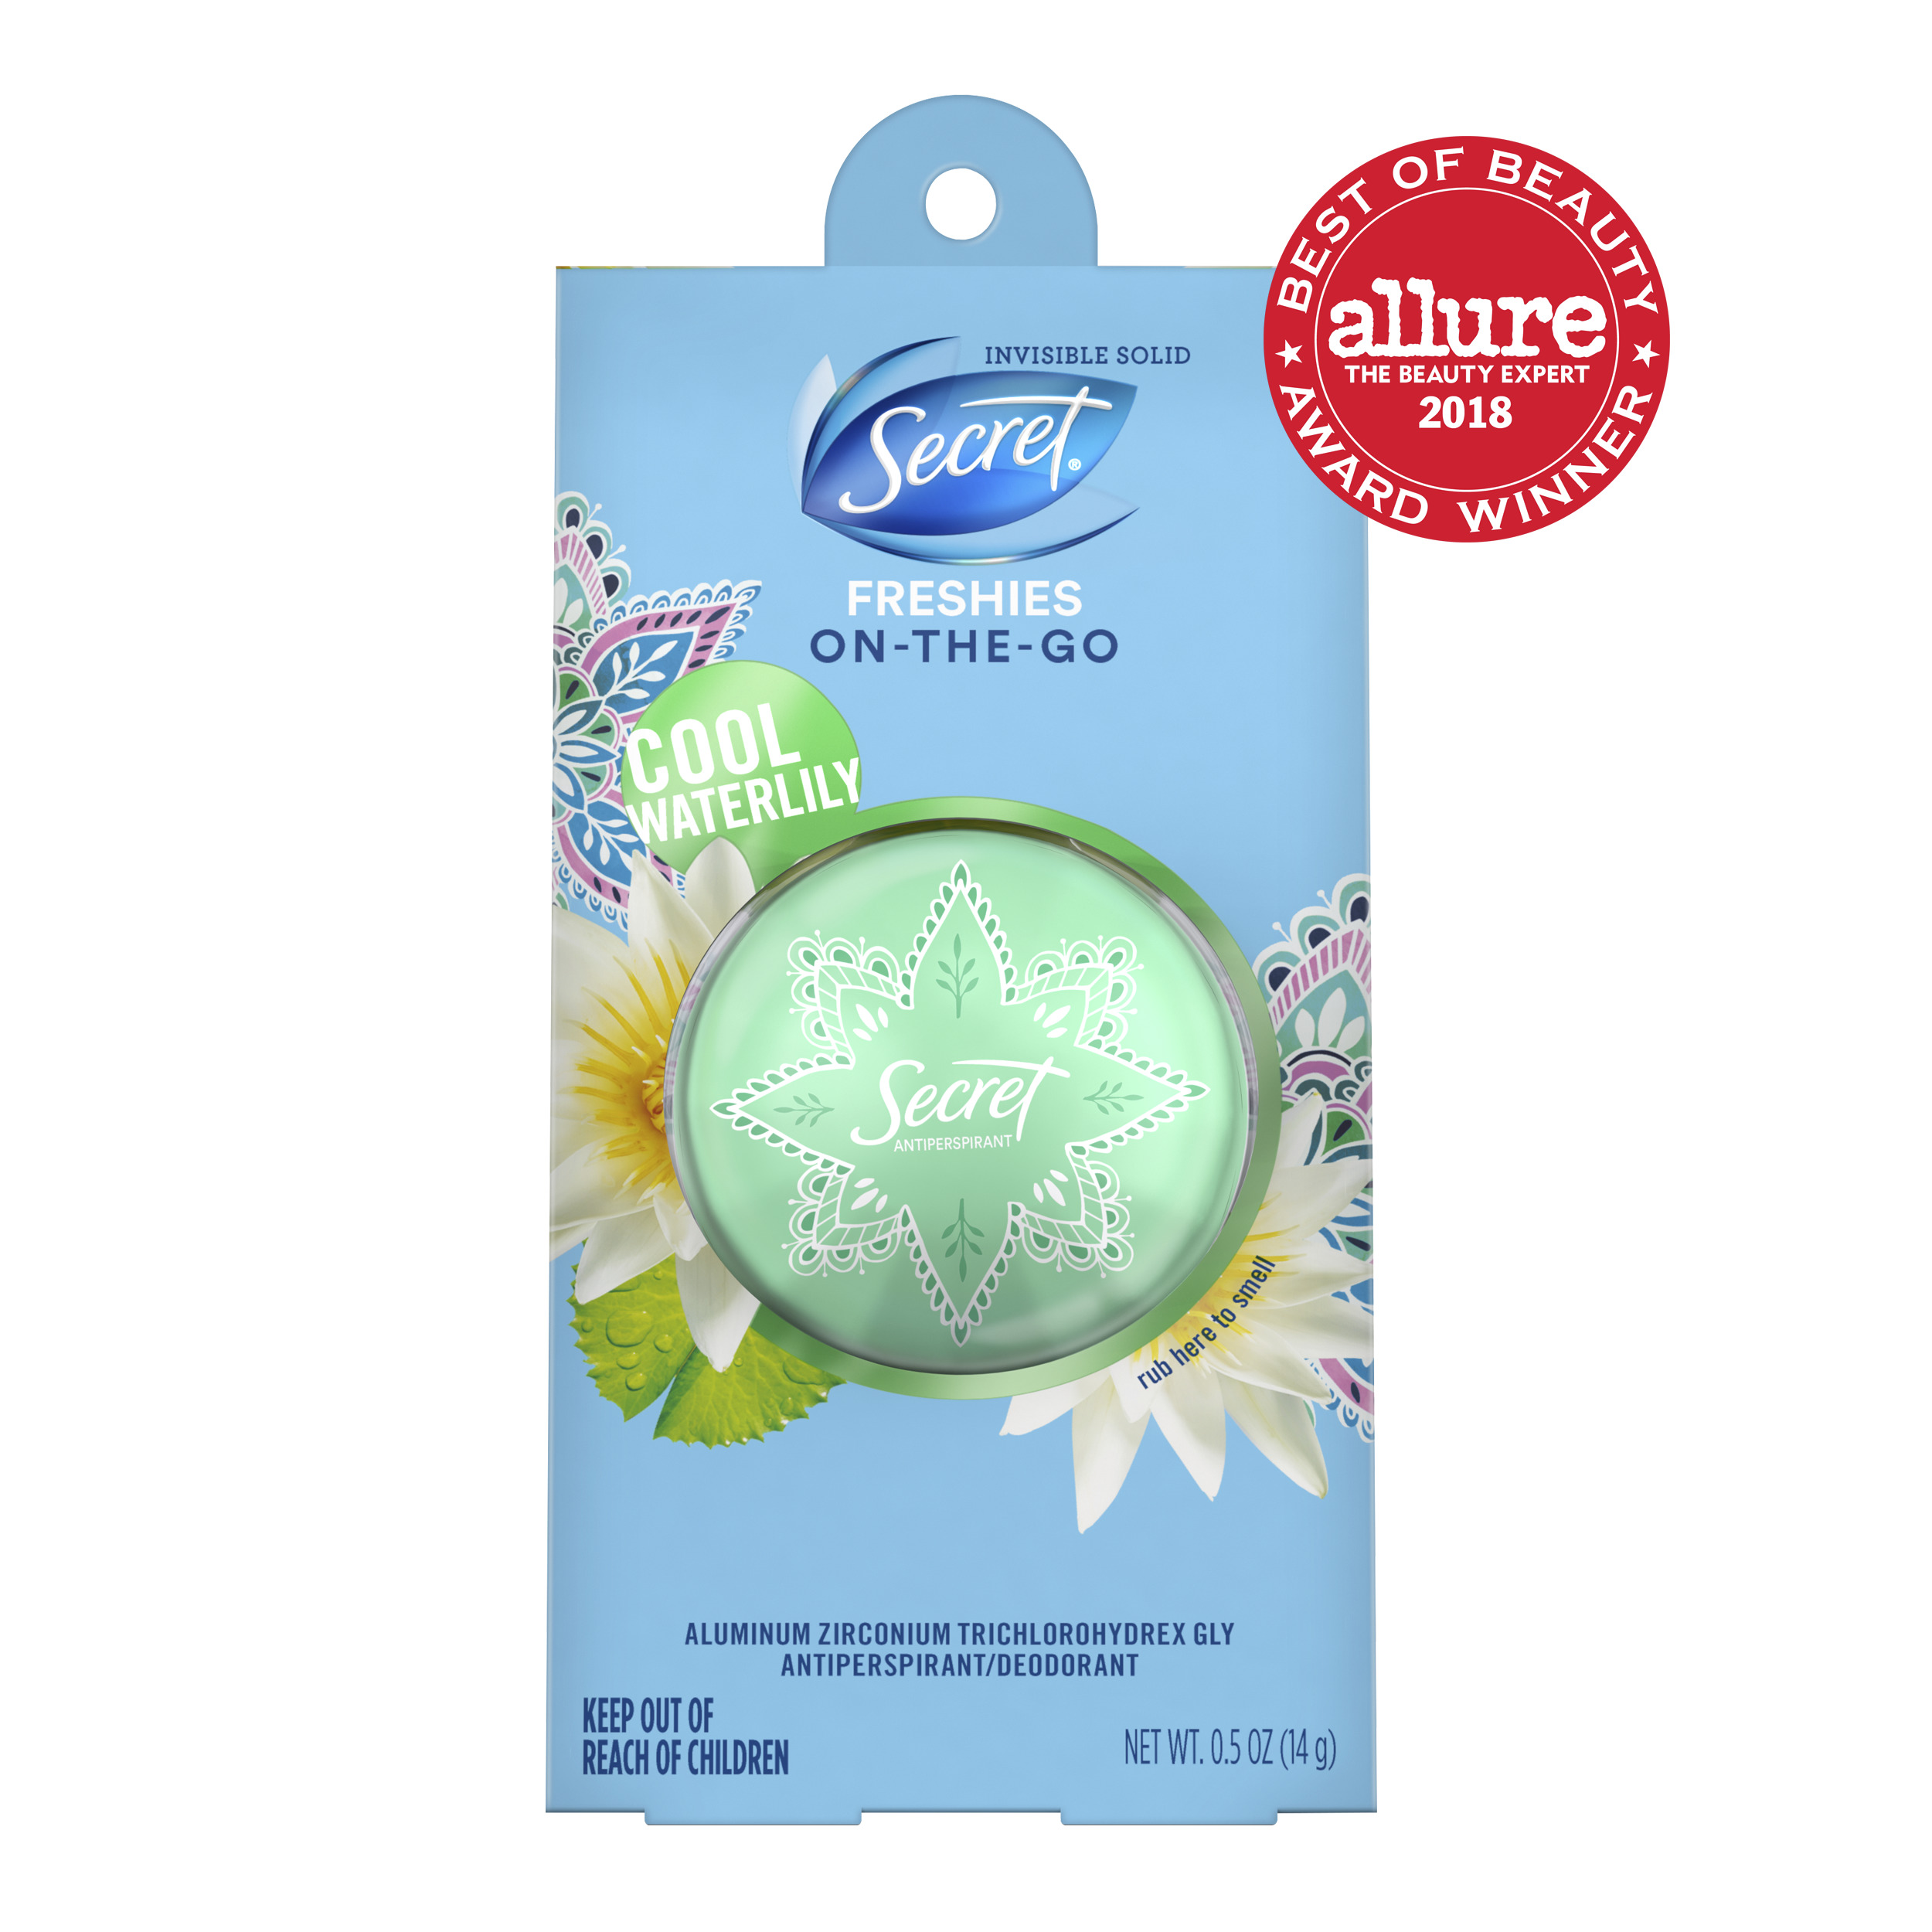 Secret Freshies Invisible Solid Antiperspirant and Deodorant Cool Waterlily Scent 0.5 Oz.